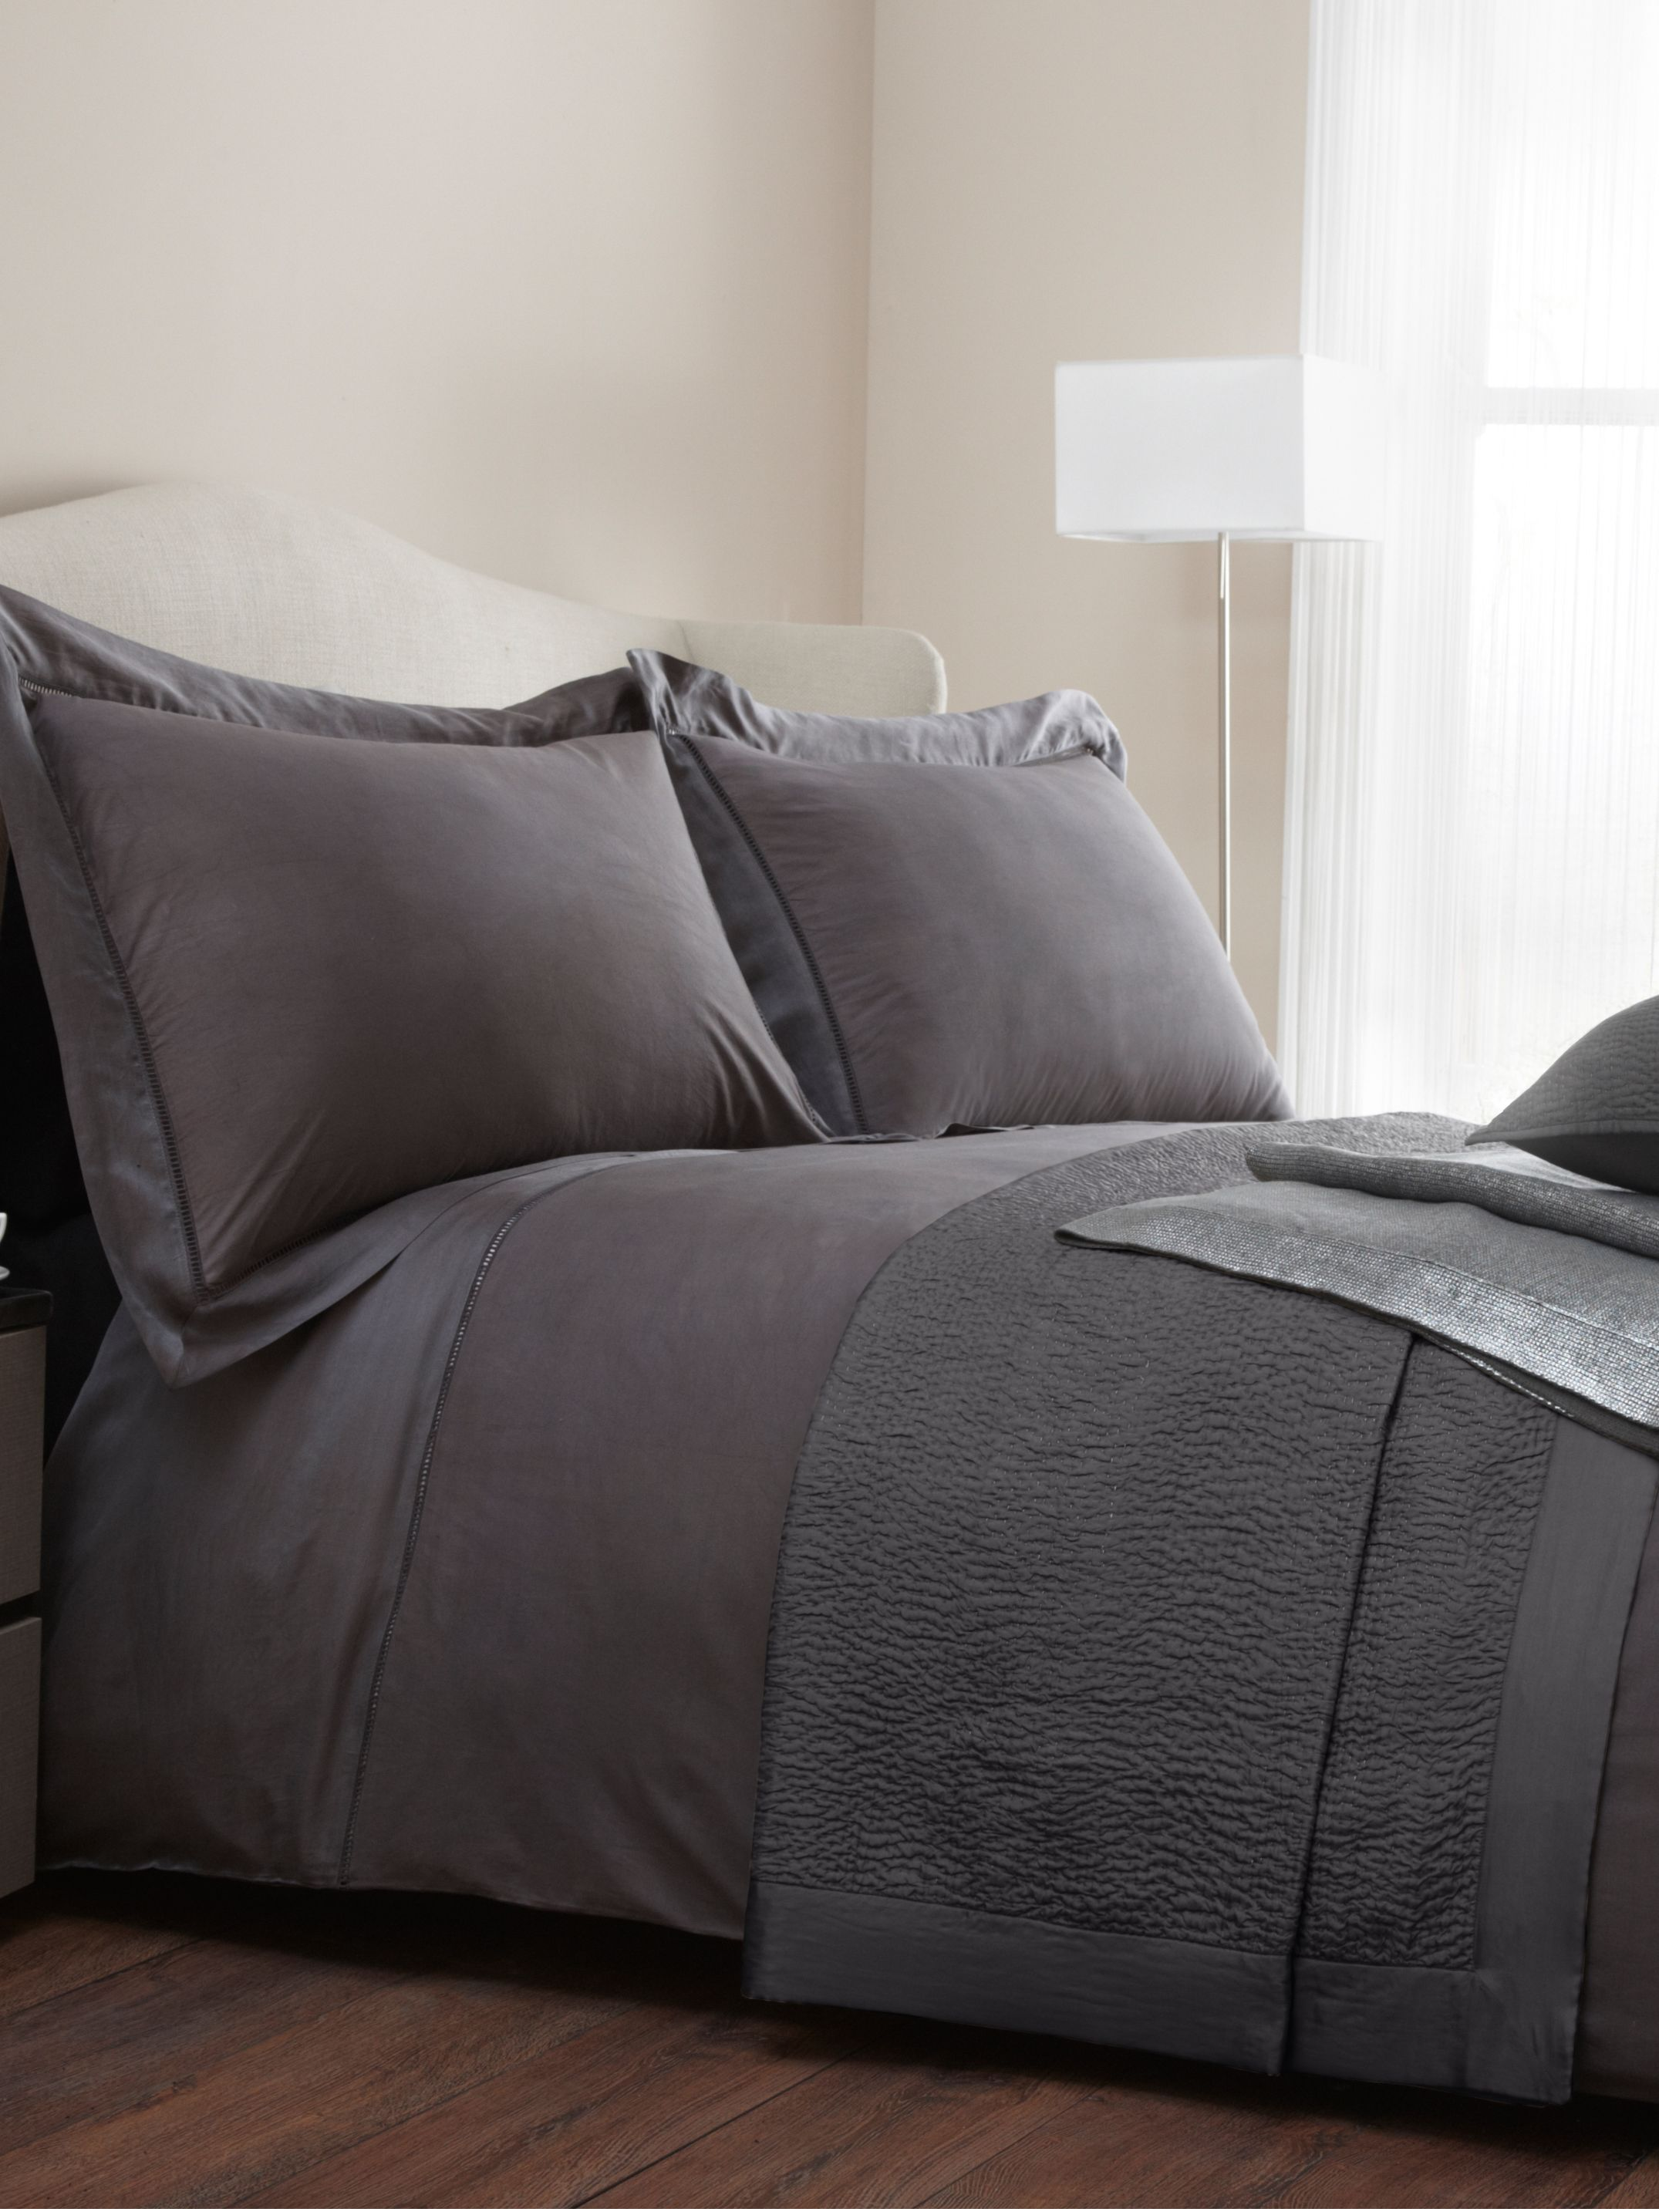 Berwick double duvet cover pewter